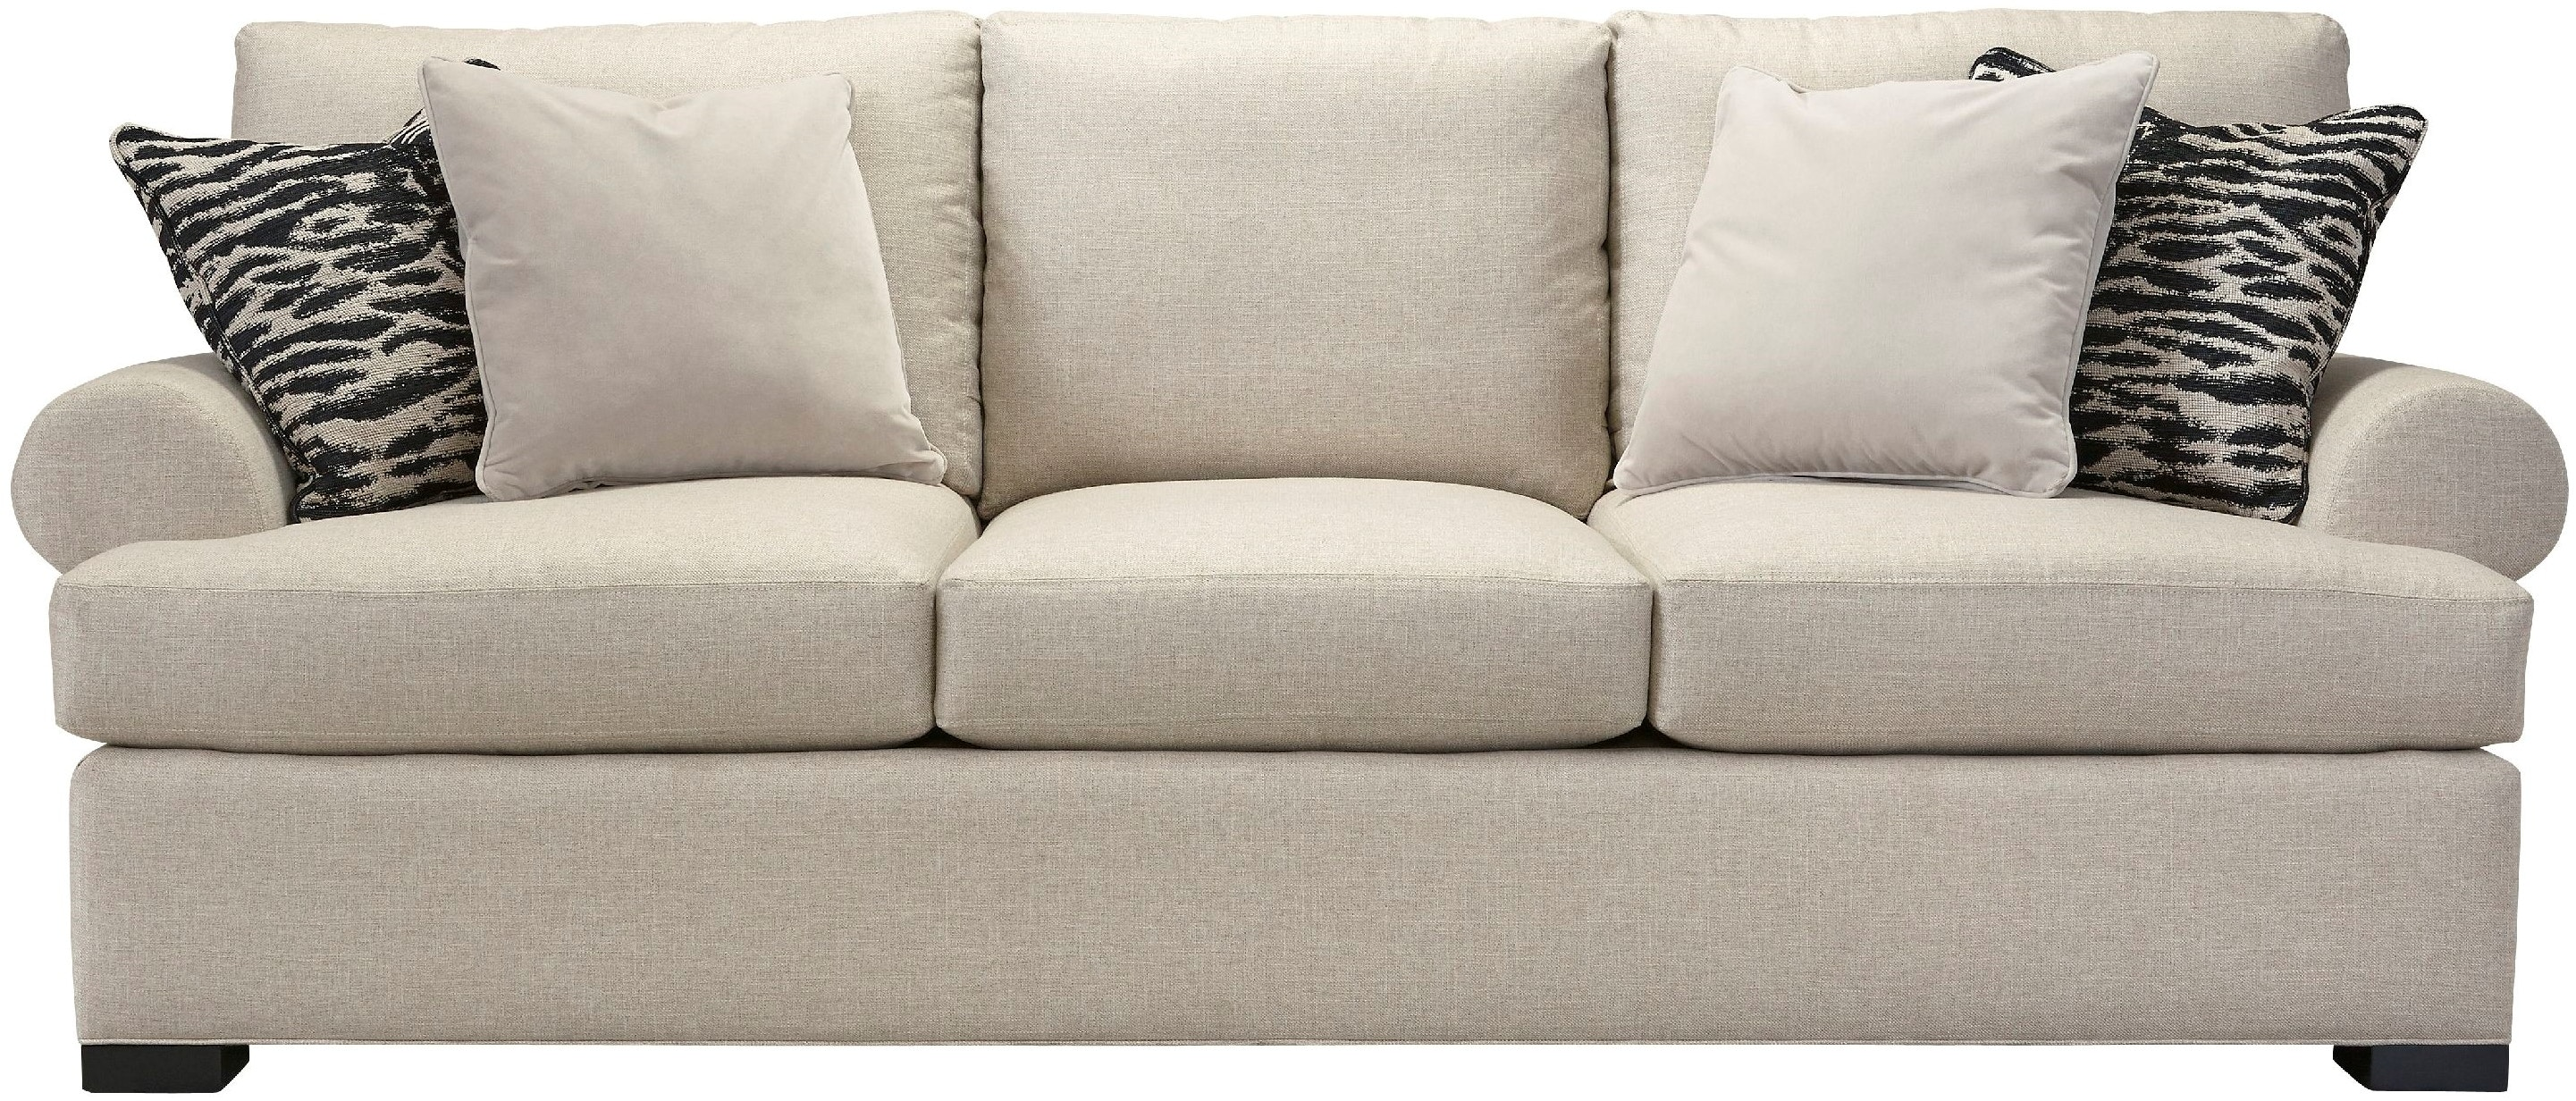 Southern Furniture Living Room August Roll Arm Sofa